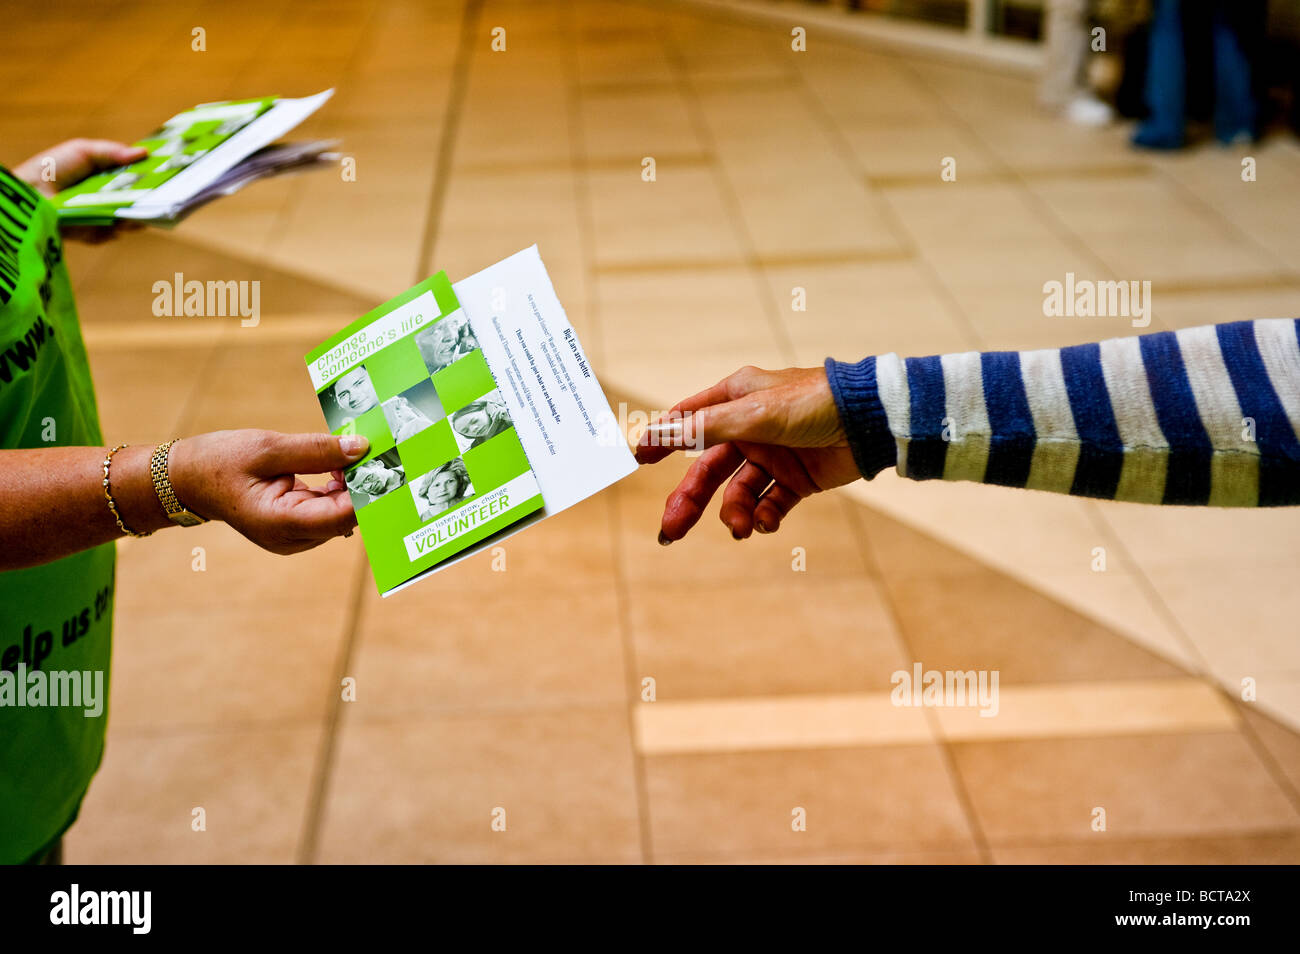 A volunteer from the Samaritans handing out leaflets. - Stock Image